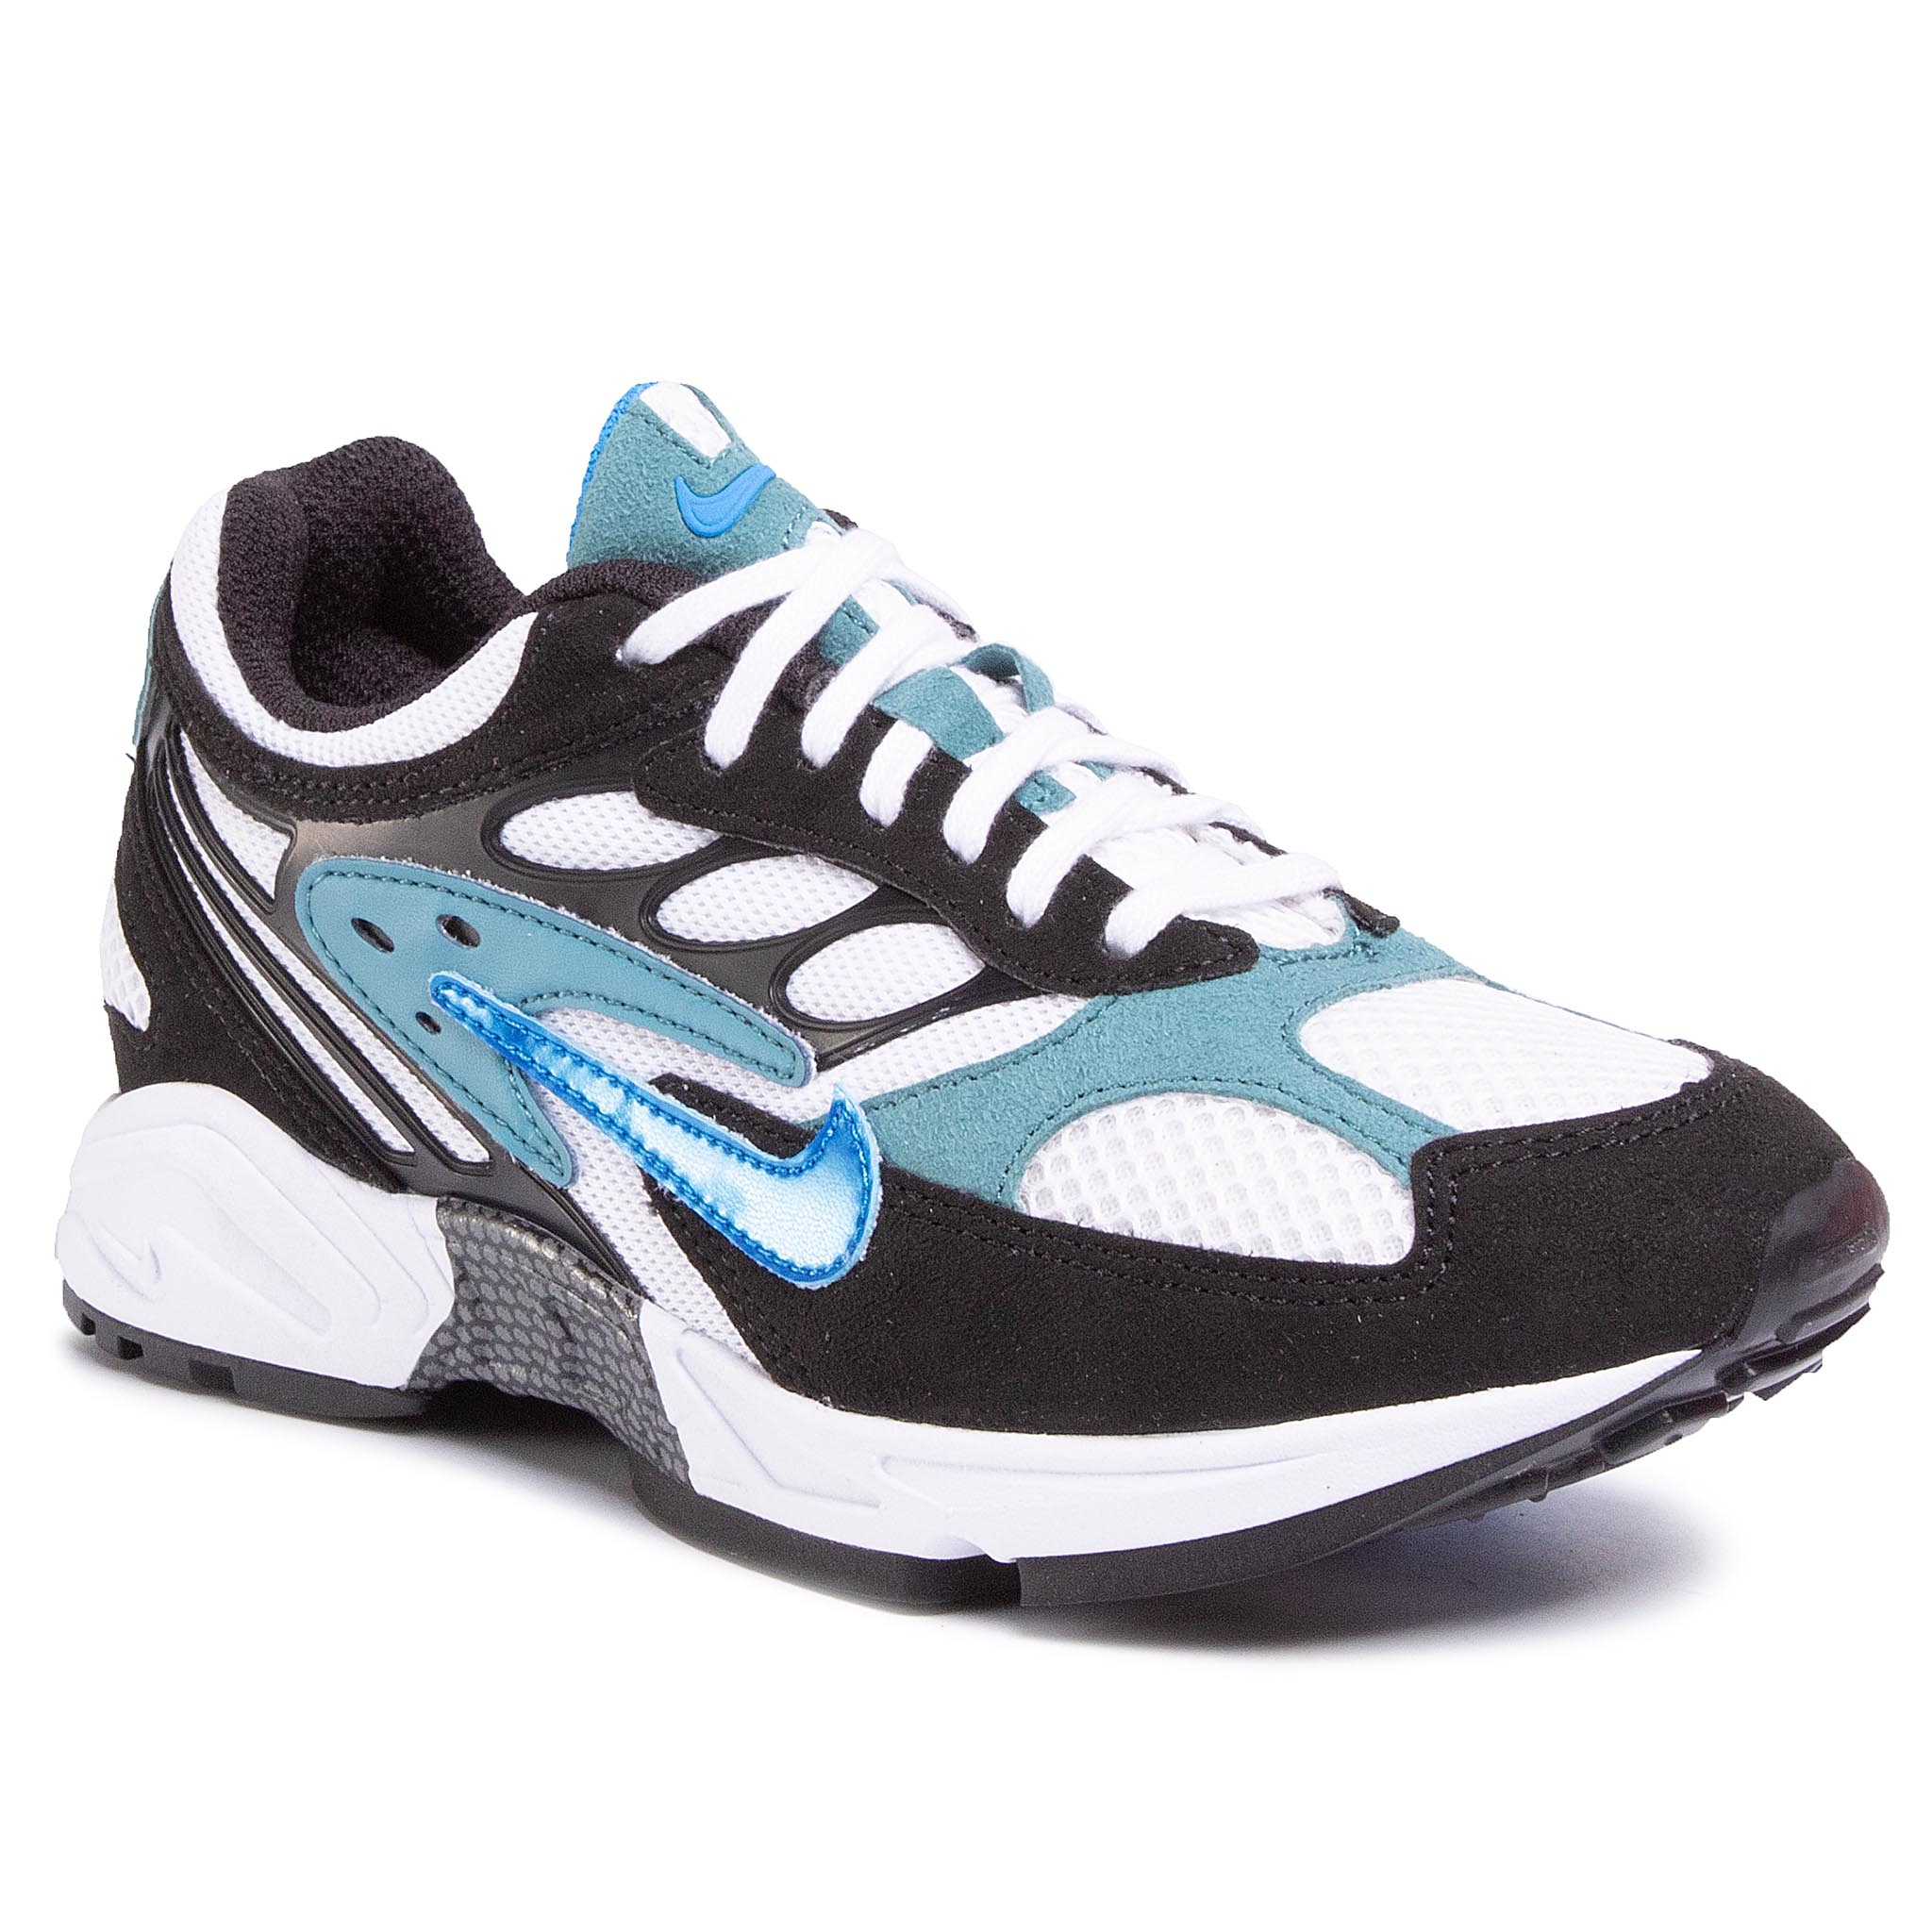 Pantofi NIKE - Nike Air Ghost Racer AT5410 004 Black/Photo Blue/Mineral Teal